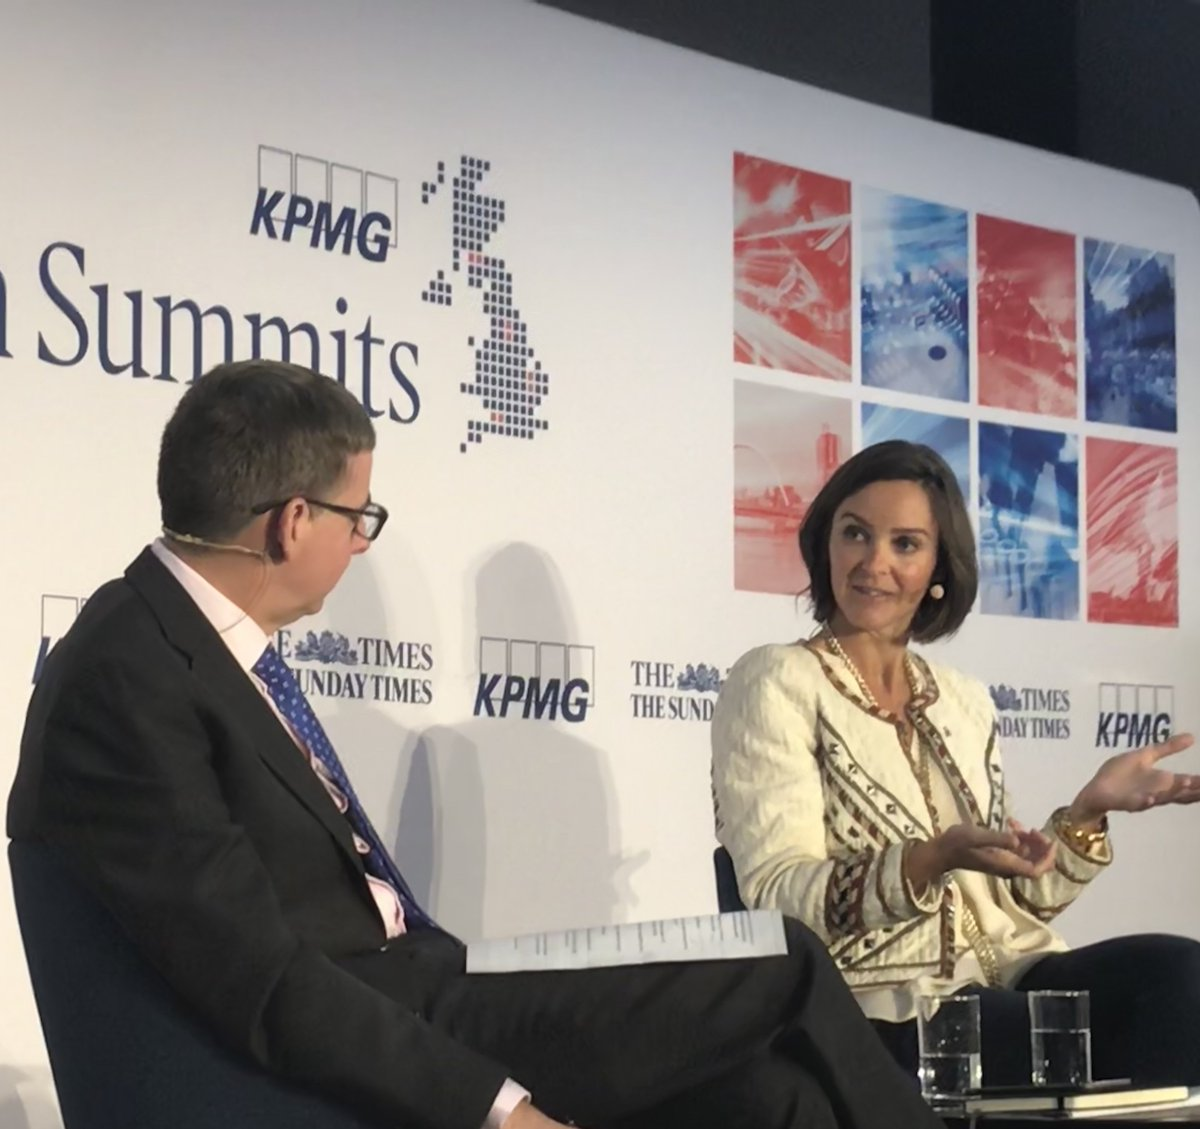 Channel 4 CEO @mahonalex outlines the opportunities presented by @Channel4s new National HQ in #Leeds in conversation with Business Editor Richard Fletcher at the @thetimes @thesundaytimes #growthsummit